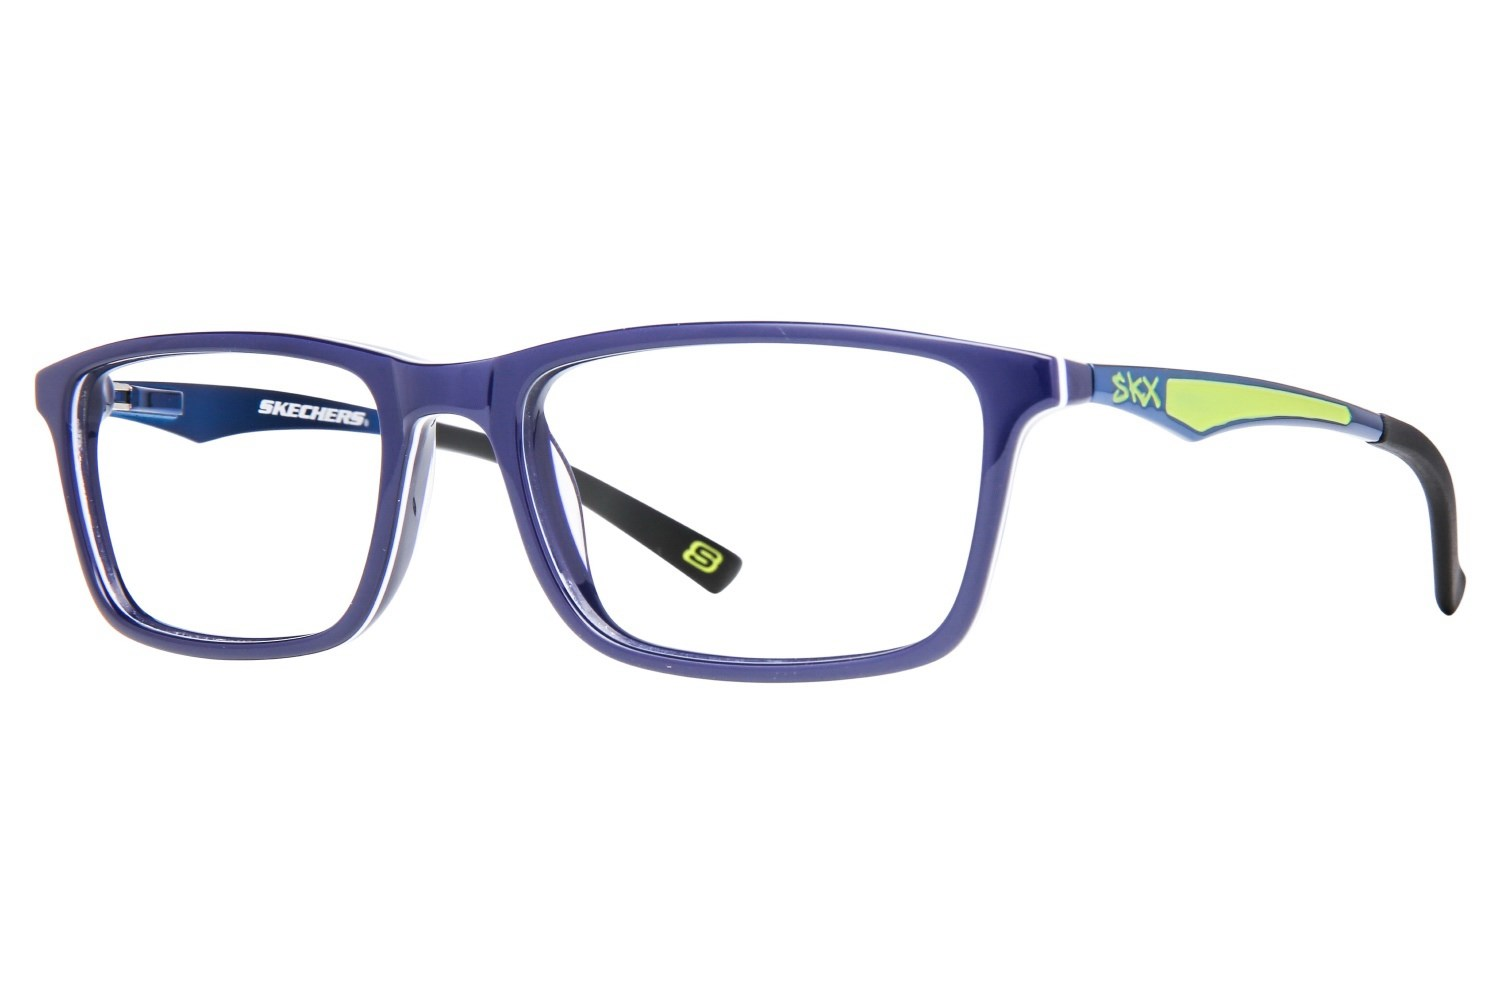 eyeglasses: Brand Skechers Eyewear glasses and contact lenses superstore